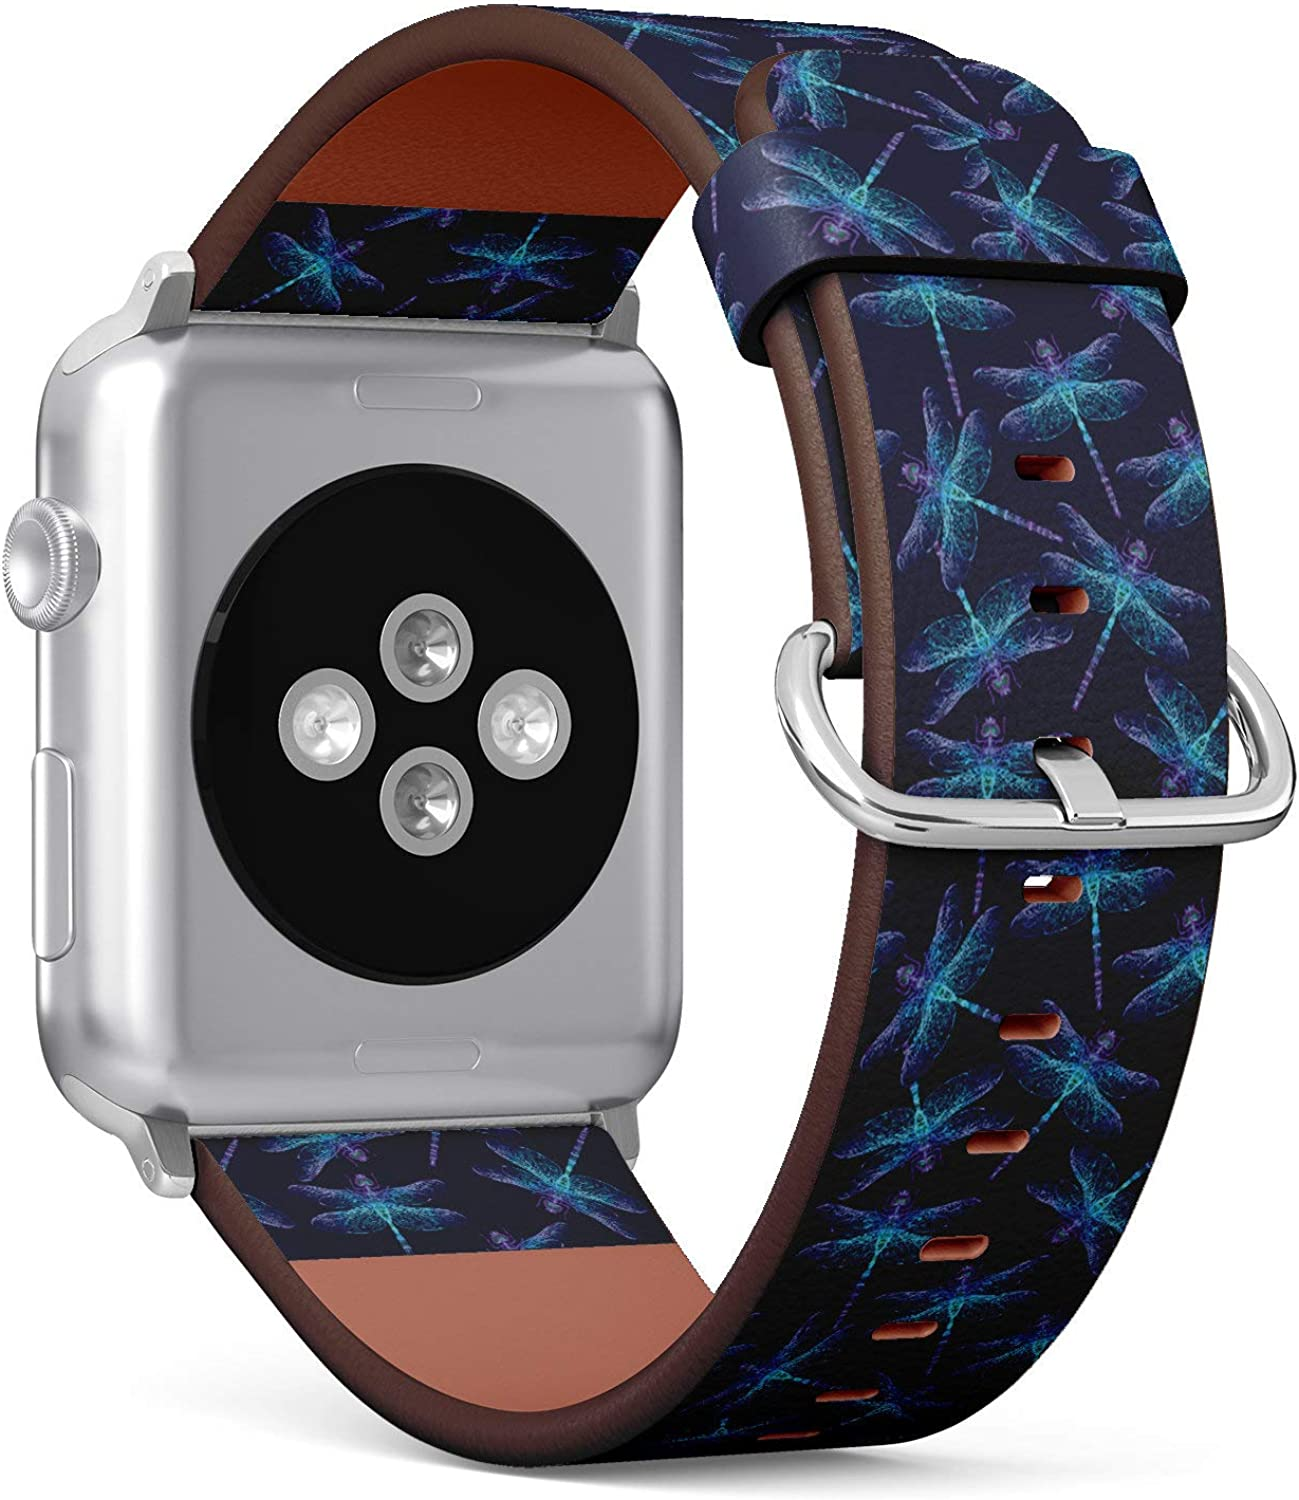 (Neon Color Dragonfly Pattern) Patterned Leather Wristband Strap for Apple Watch Series 4/3/2/1 gen,Replacement for iWatch 38mm / 40mm Bands